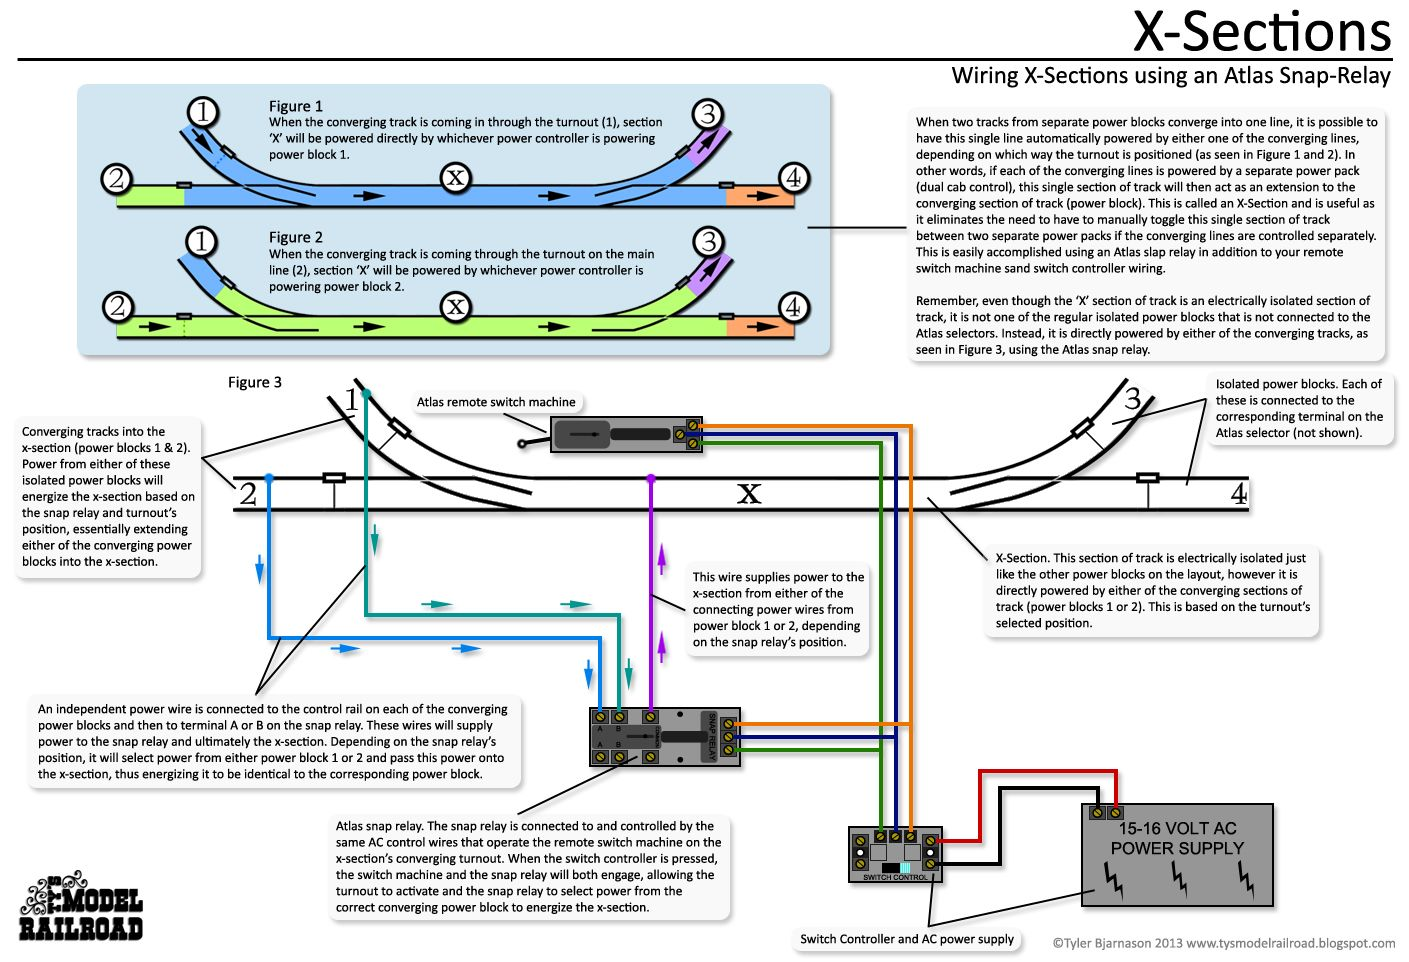 how to wire an x section using an atlas snap relay and 220 circuit wiring diagram